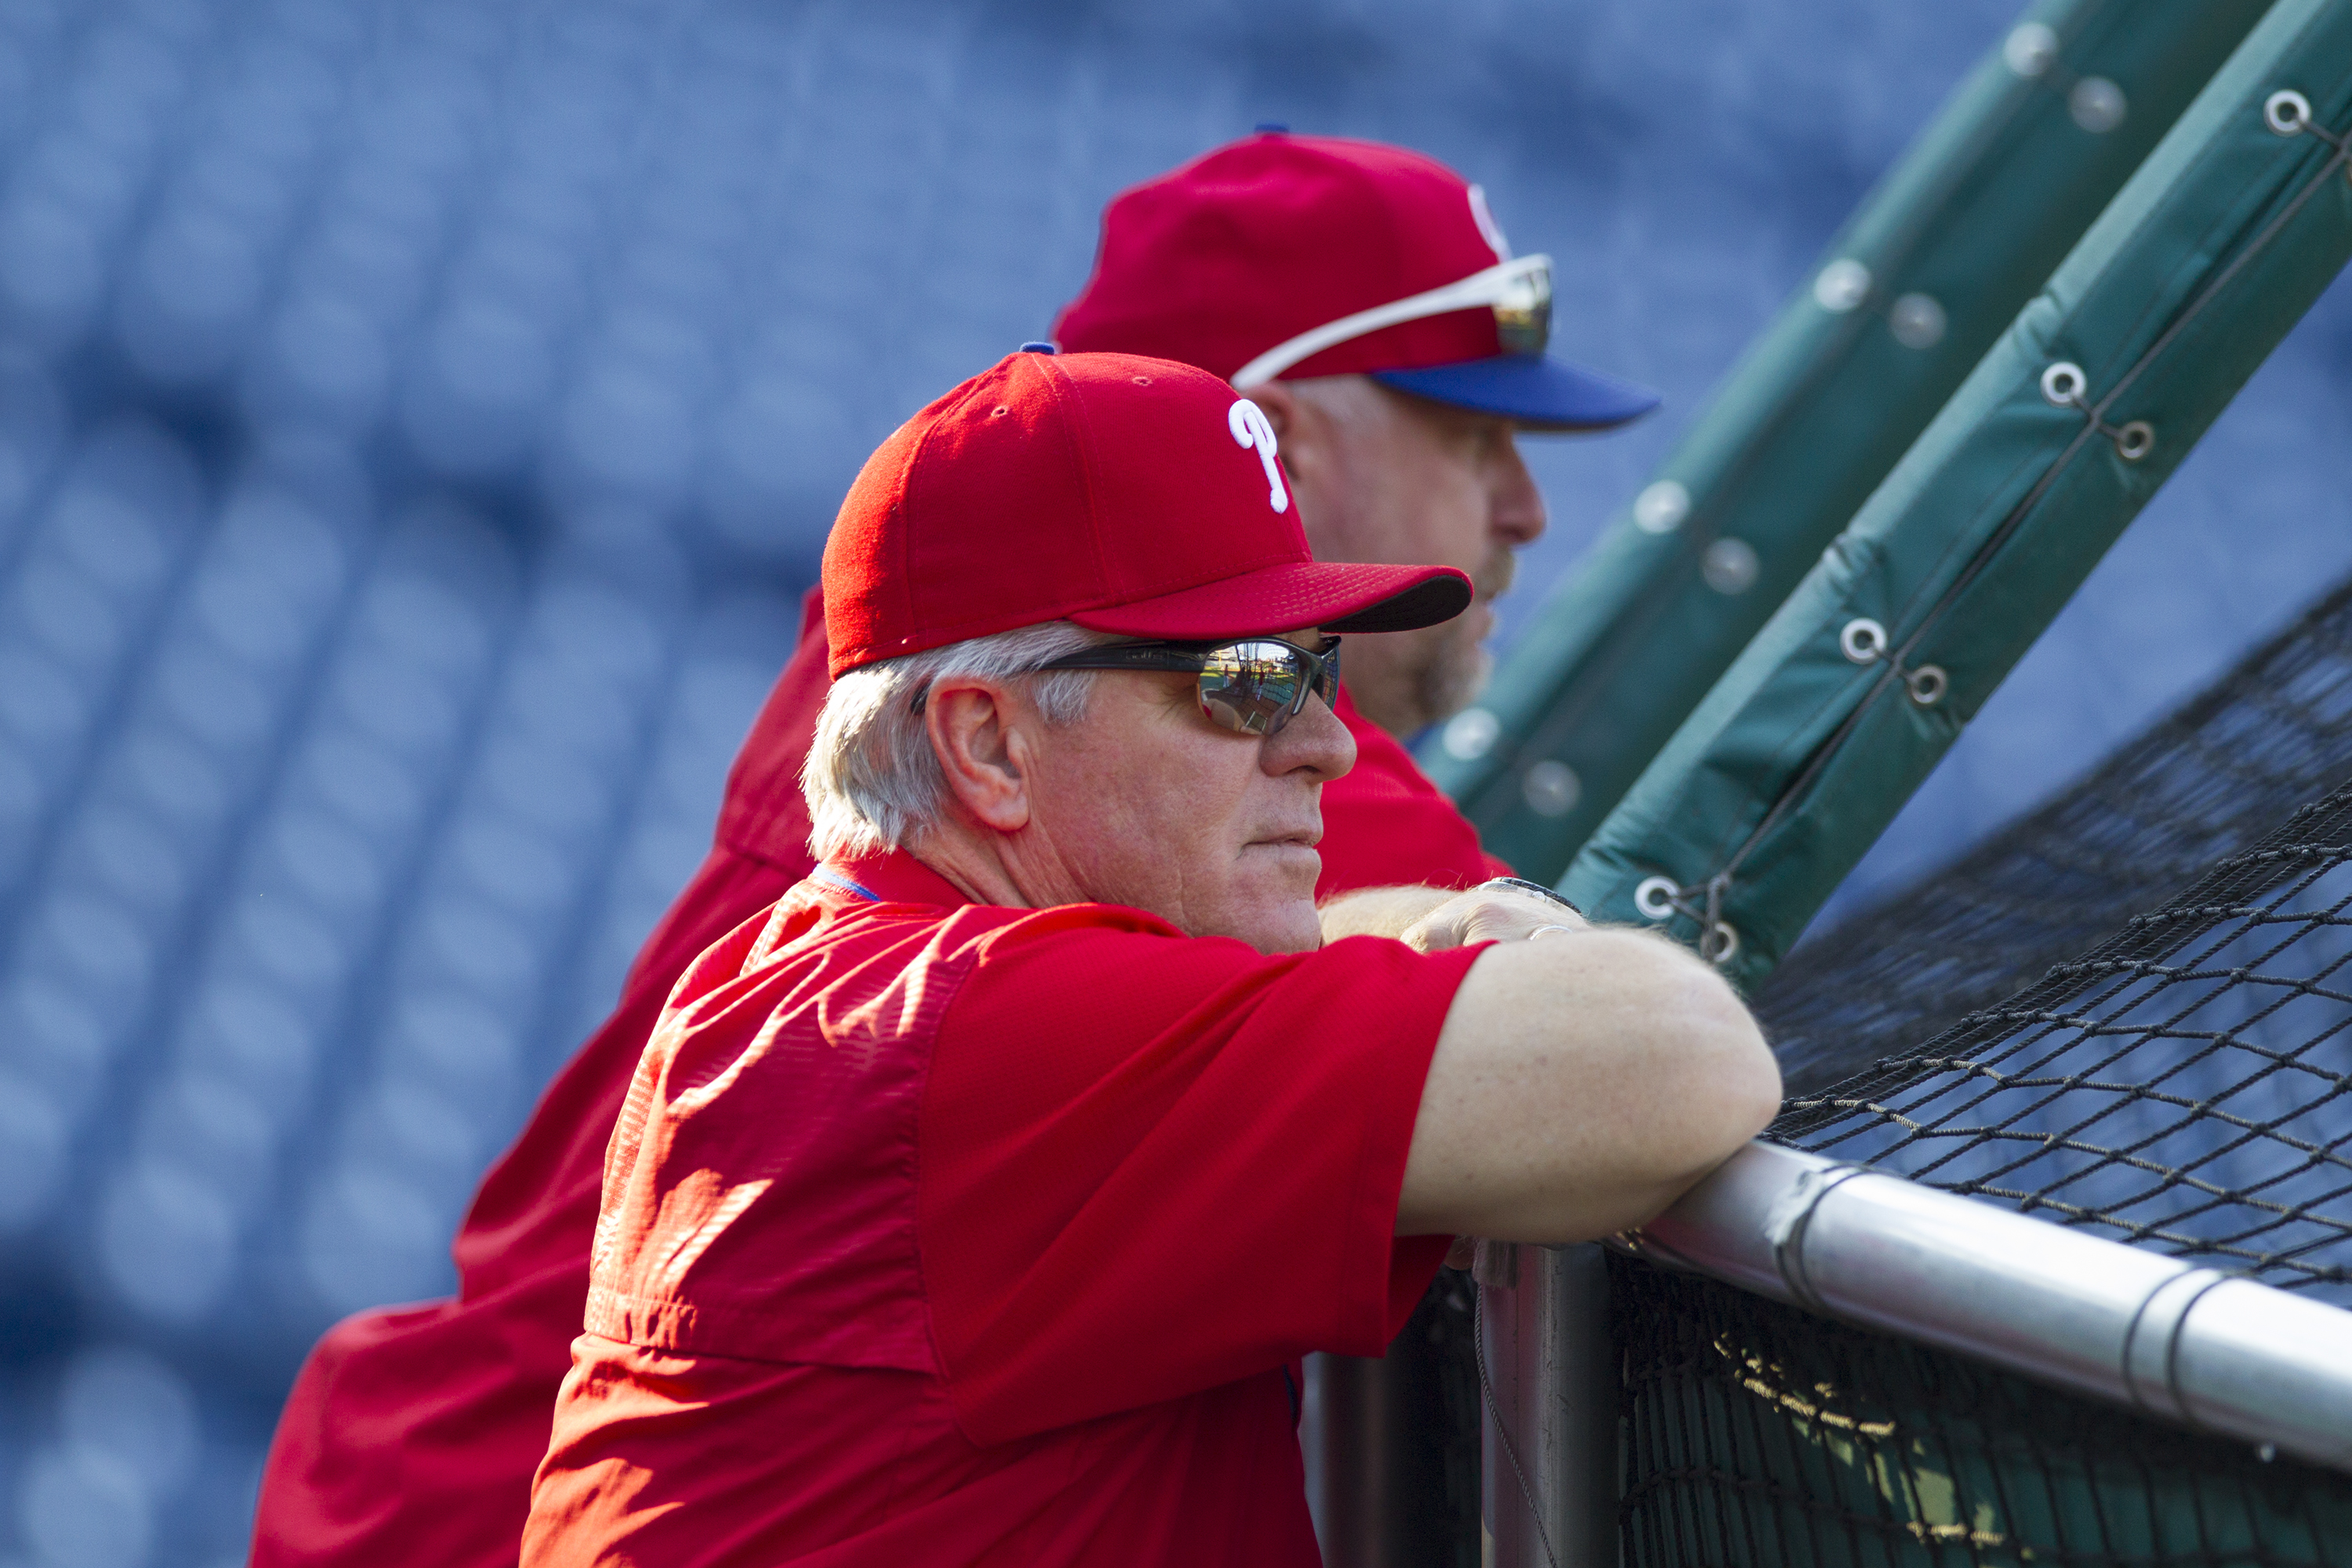 The Phillies announced on Sept. 29, 2017, that Phillies Manager Pete Mackanin will not return next year as manager but have an advisory role in the organization. Mackanin is shown during batting practice before tonight's game against the Mets.